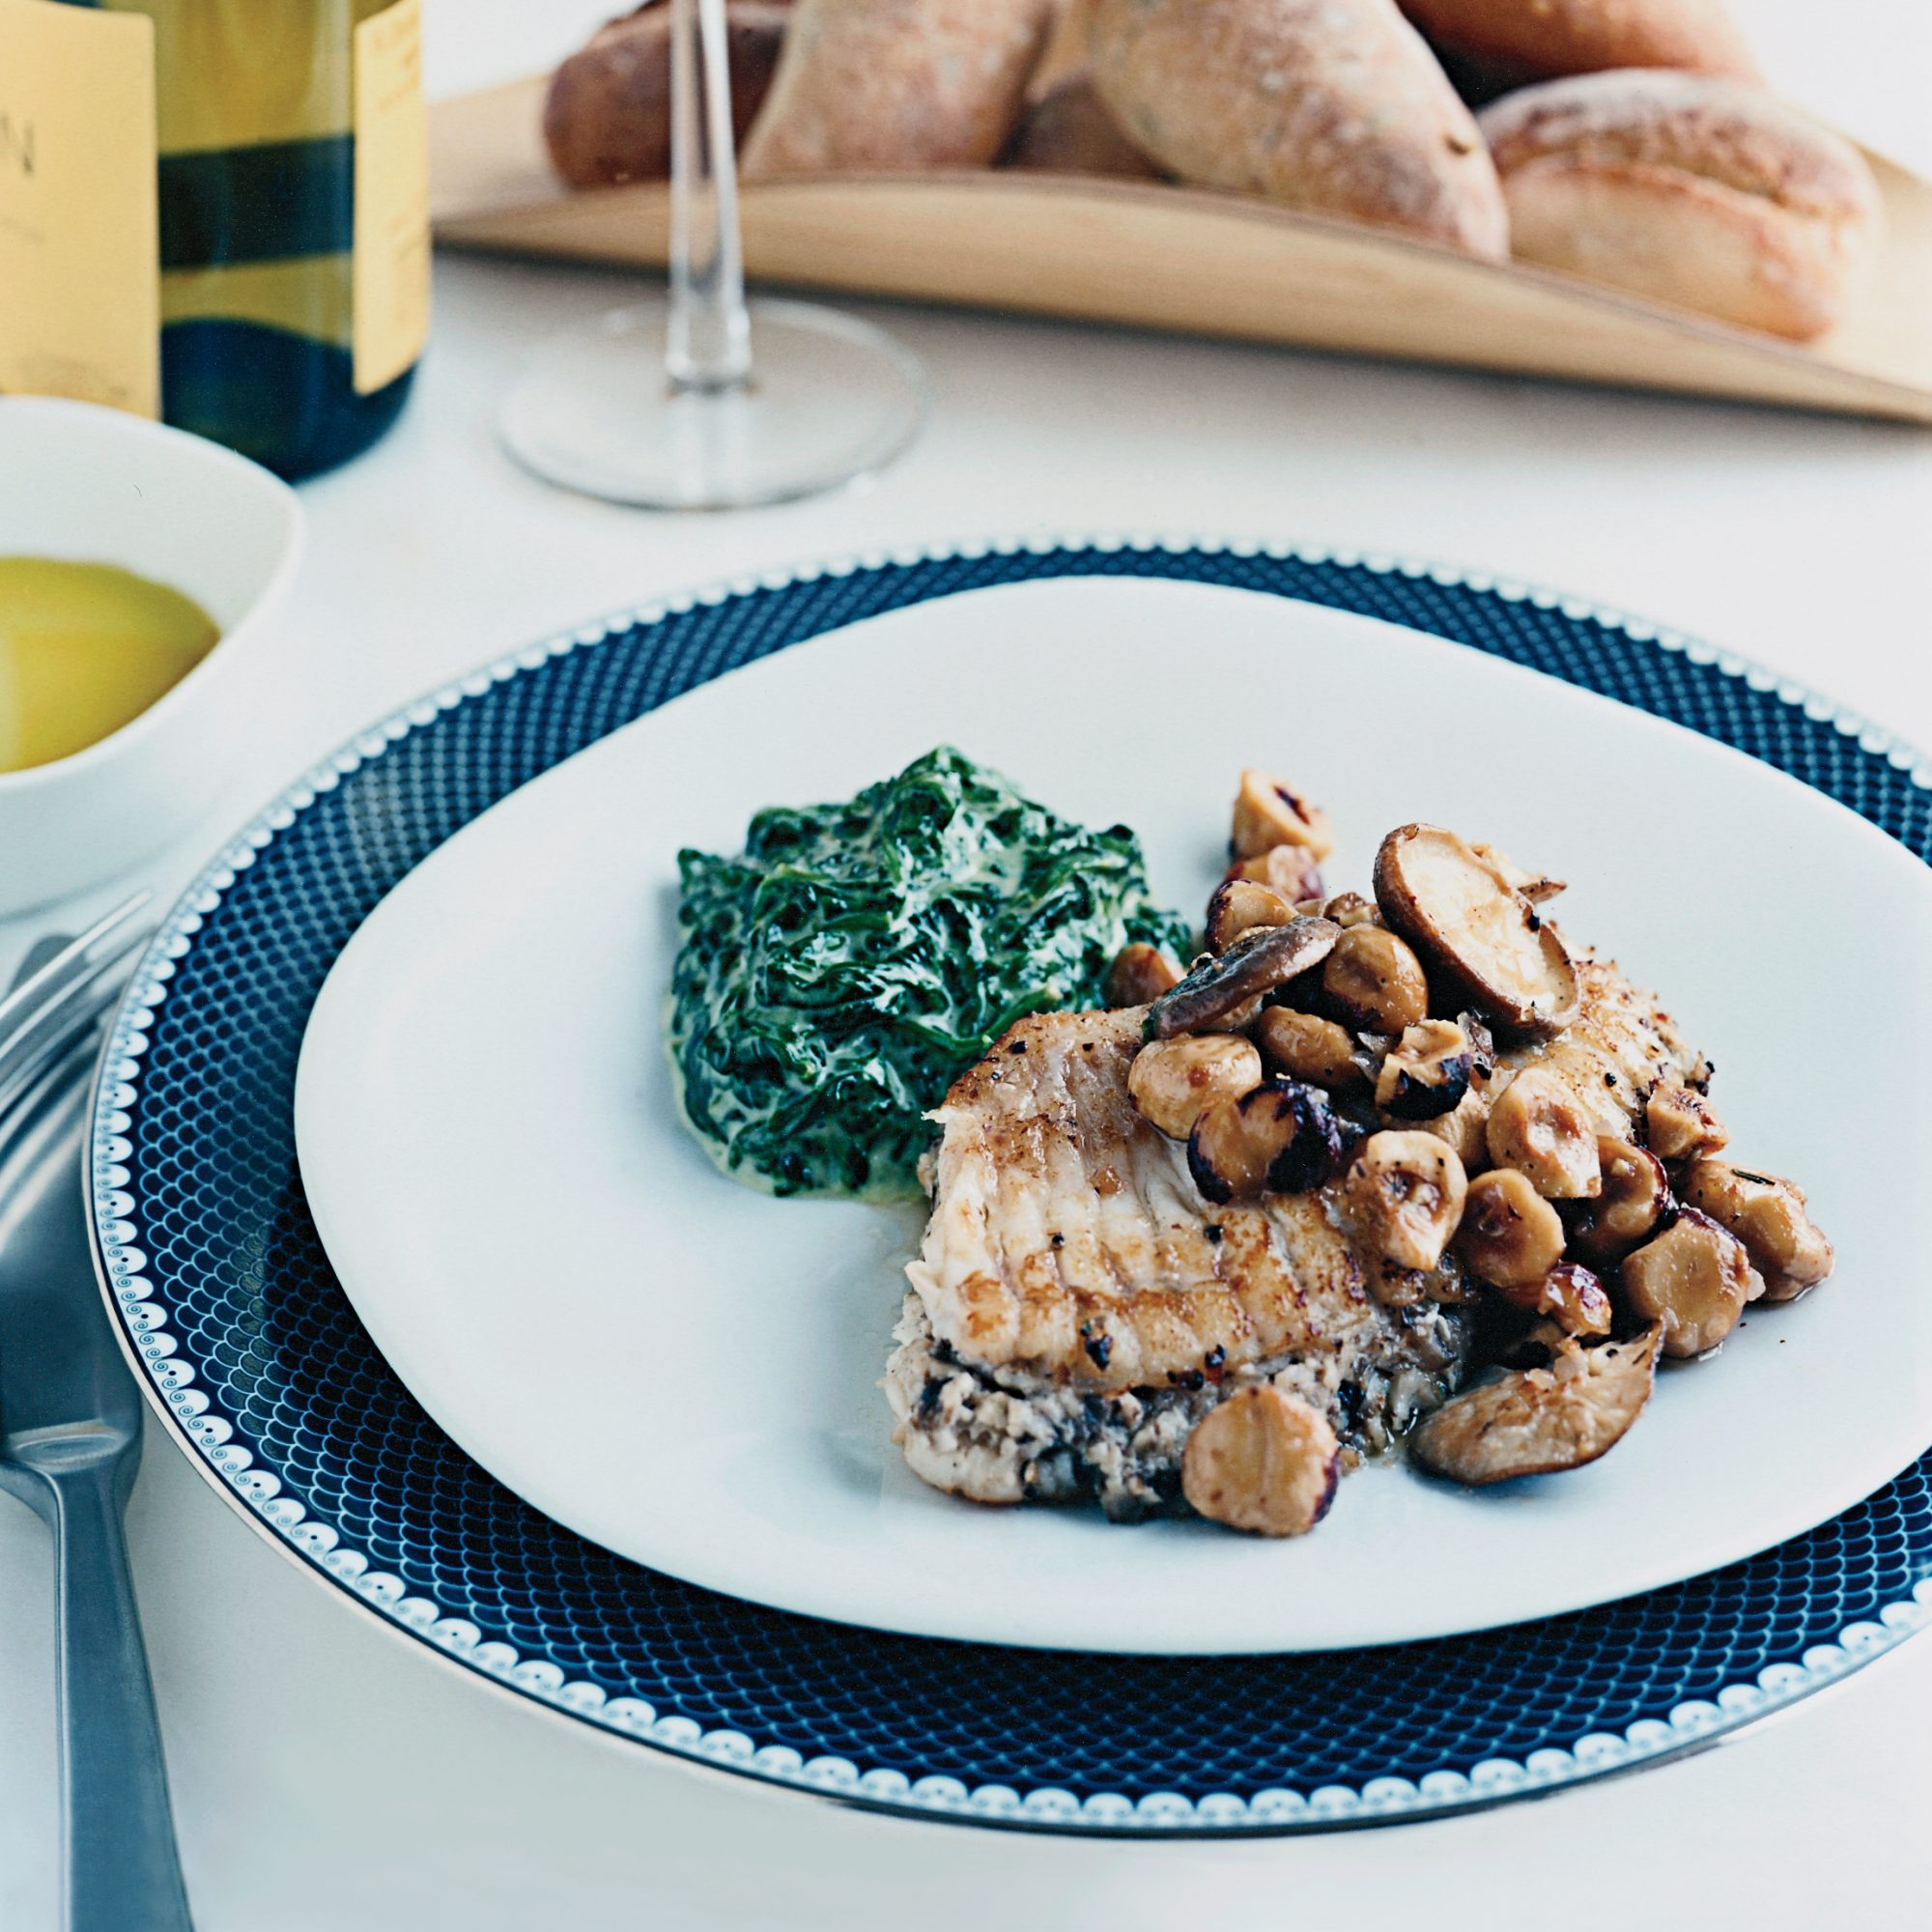 Skate with Mushrooms and Hazelnuts